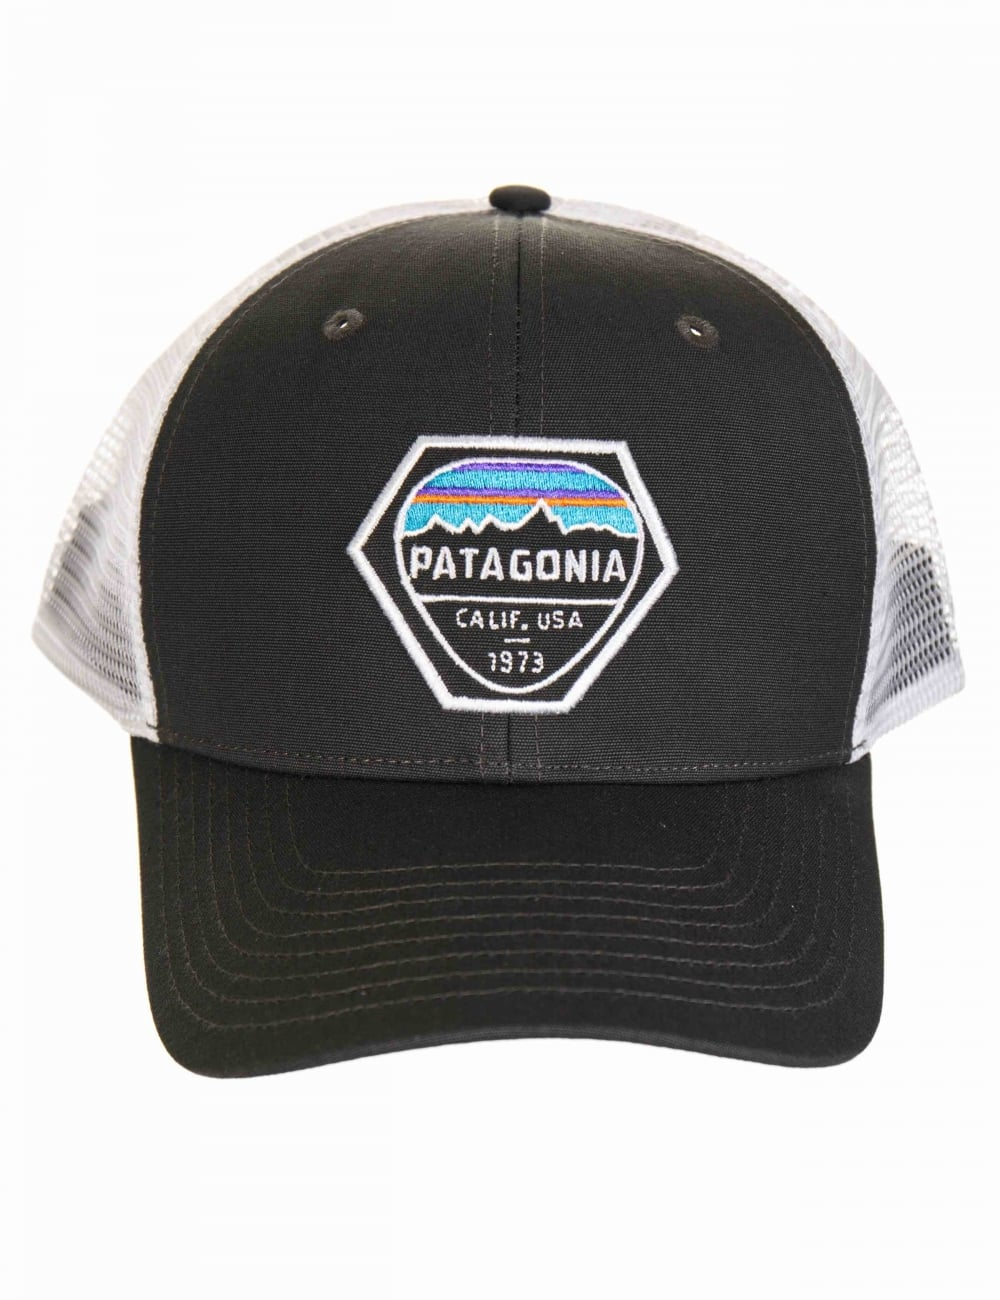 437746e3484 Patagonia Fitz Roy Hex Trucker Hat - Forge Grey - Accessories from ...